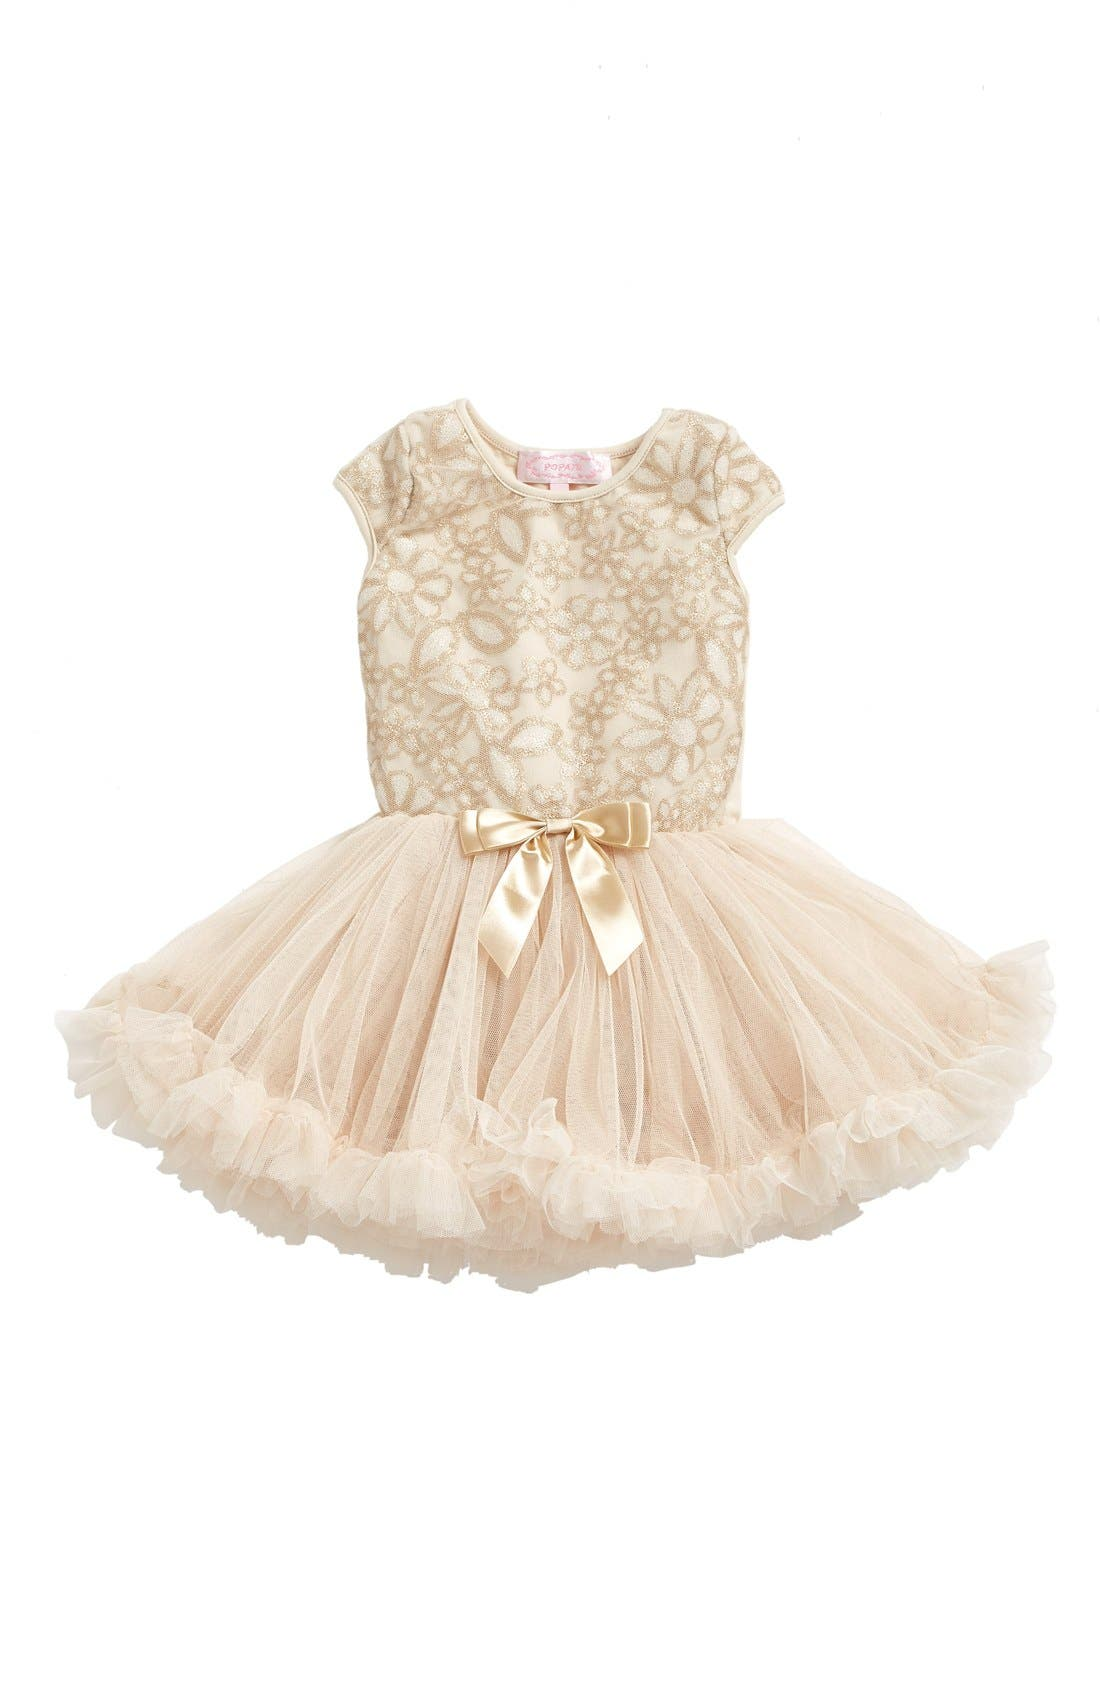 Baby Girls\' Off-White Clothing: Dresses, Bodysuits & Footies | Nordstrom